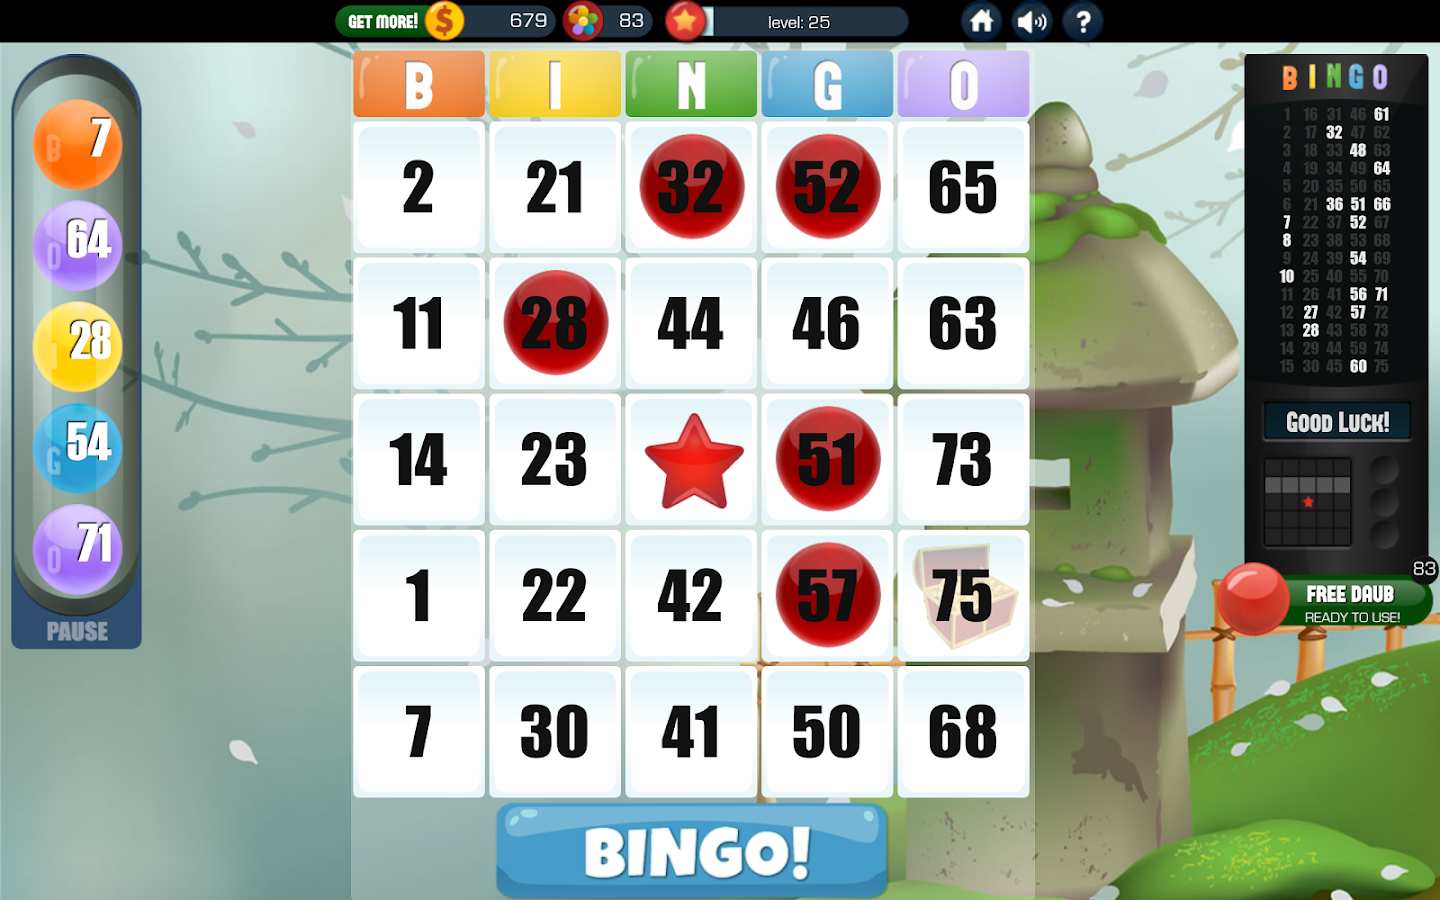 Bingo Crusoe - Play for Free Online with No Downloads